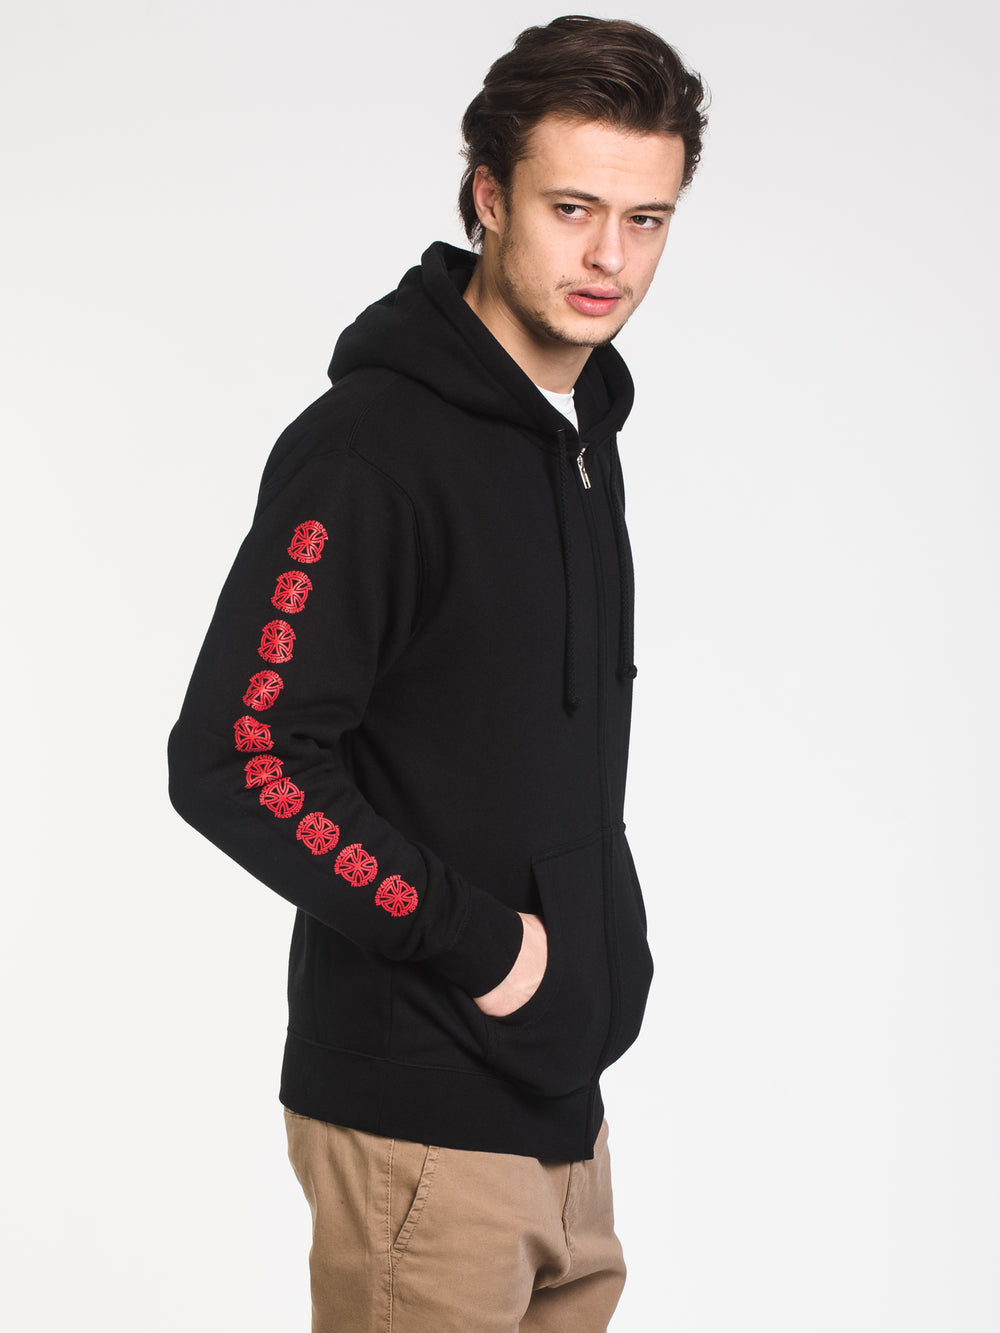 MENS BAUHAUS CROSS FULL ZIP - BLACK